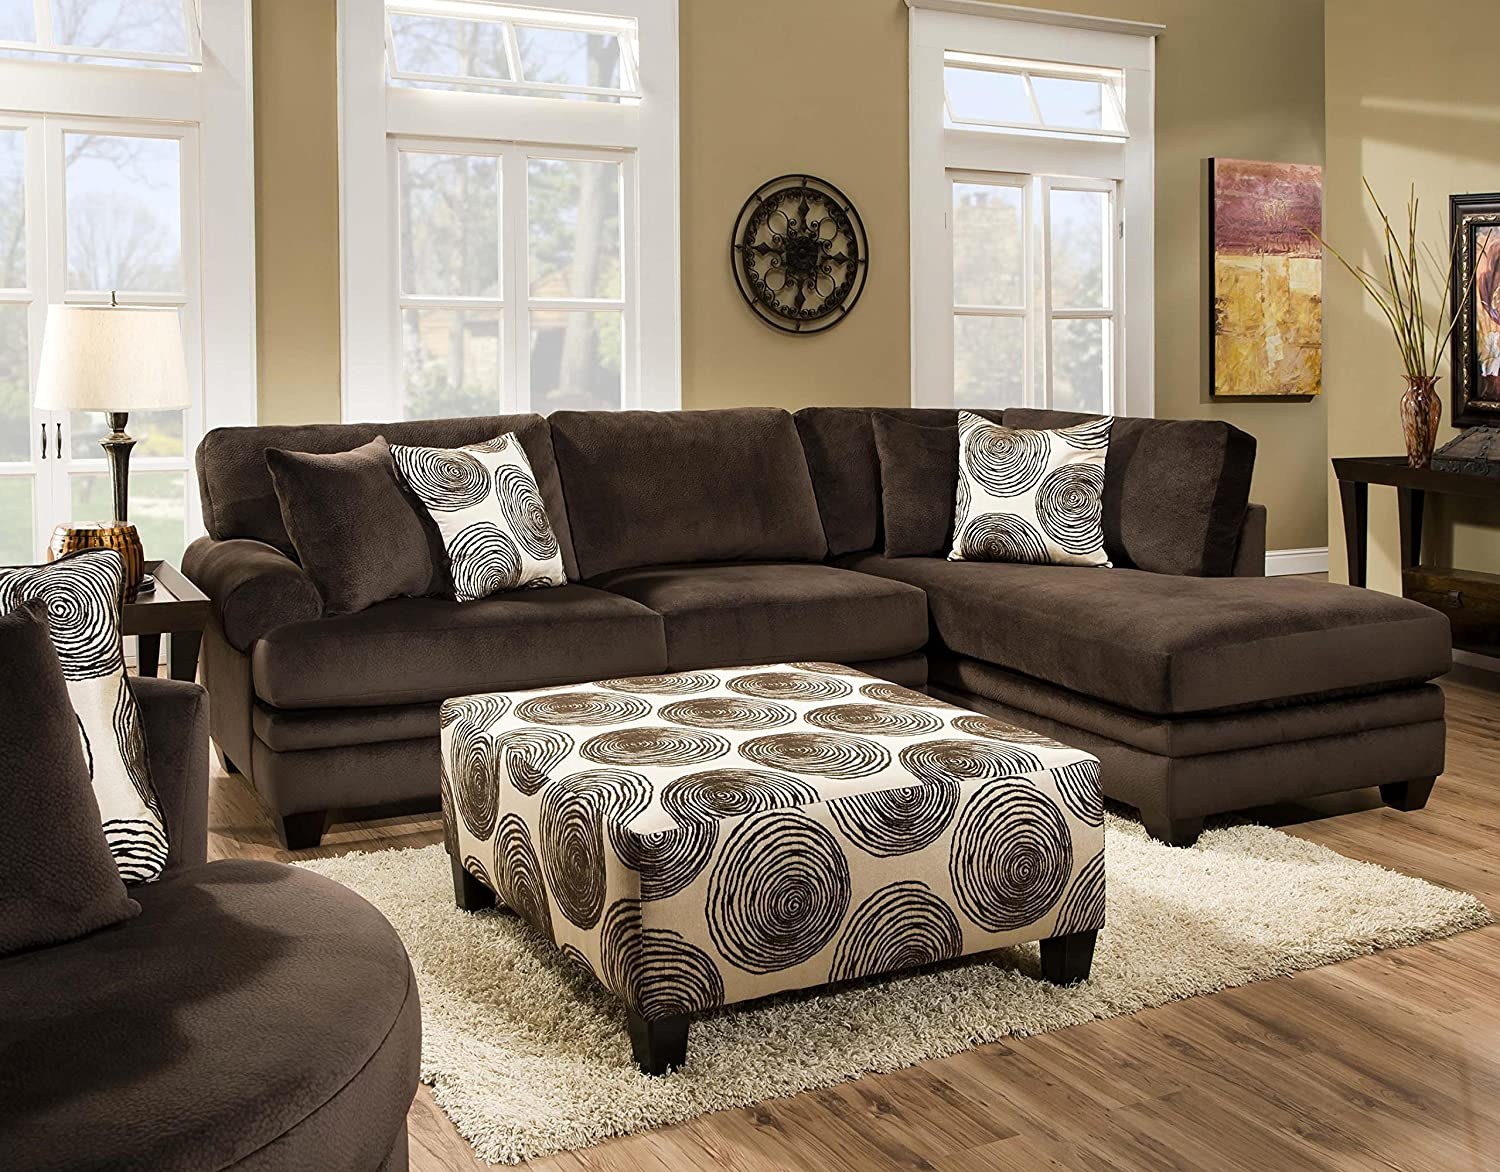 Amazon Chelsea Home Furniture Rayna 2 Piece Sectional Groovy